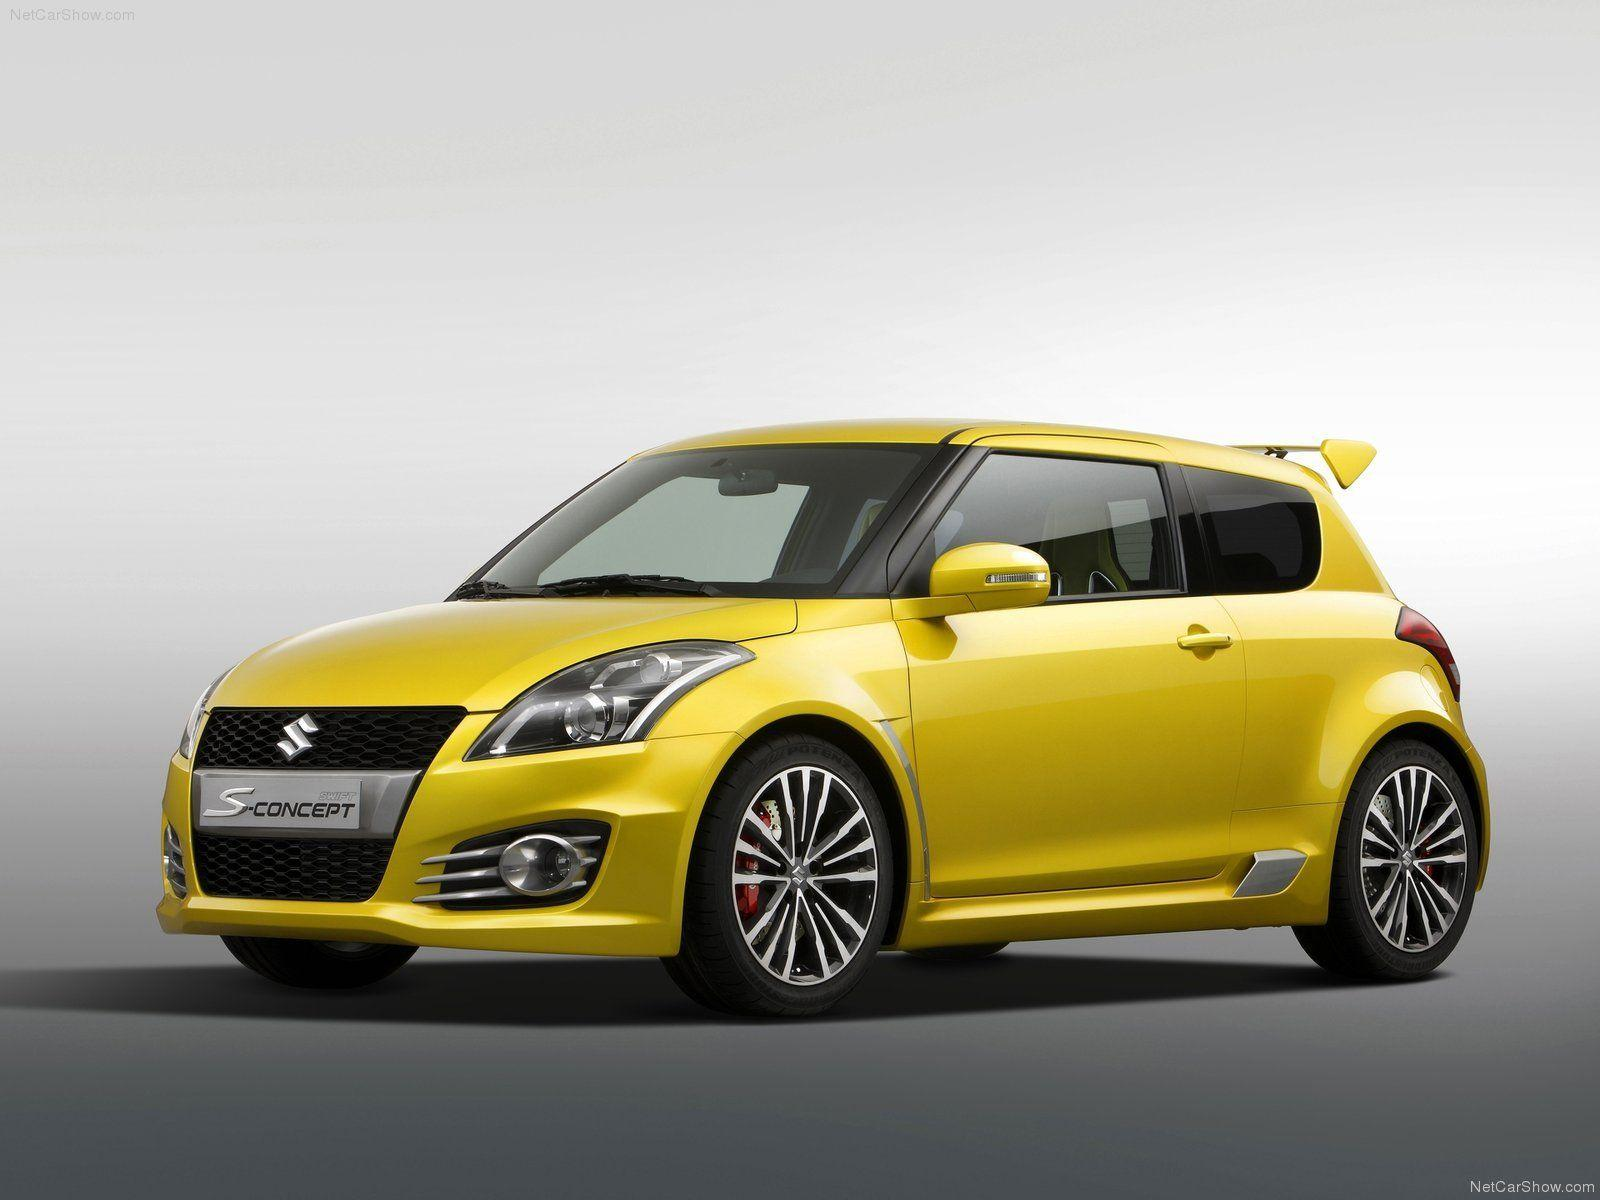 Suzuki Swift S Concept (2011) | Cars | Pinterest | Dream cars and Cars